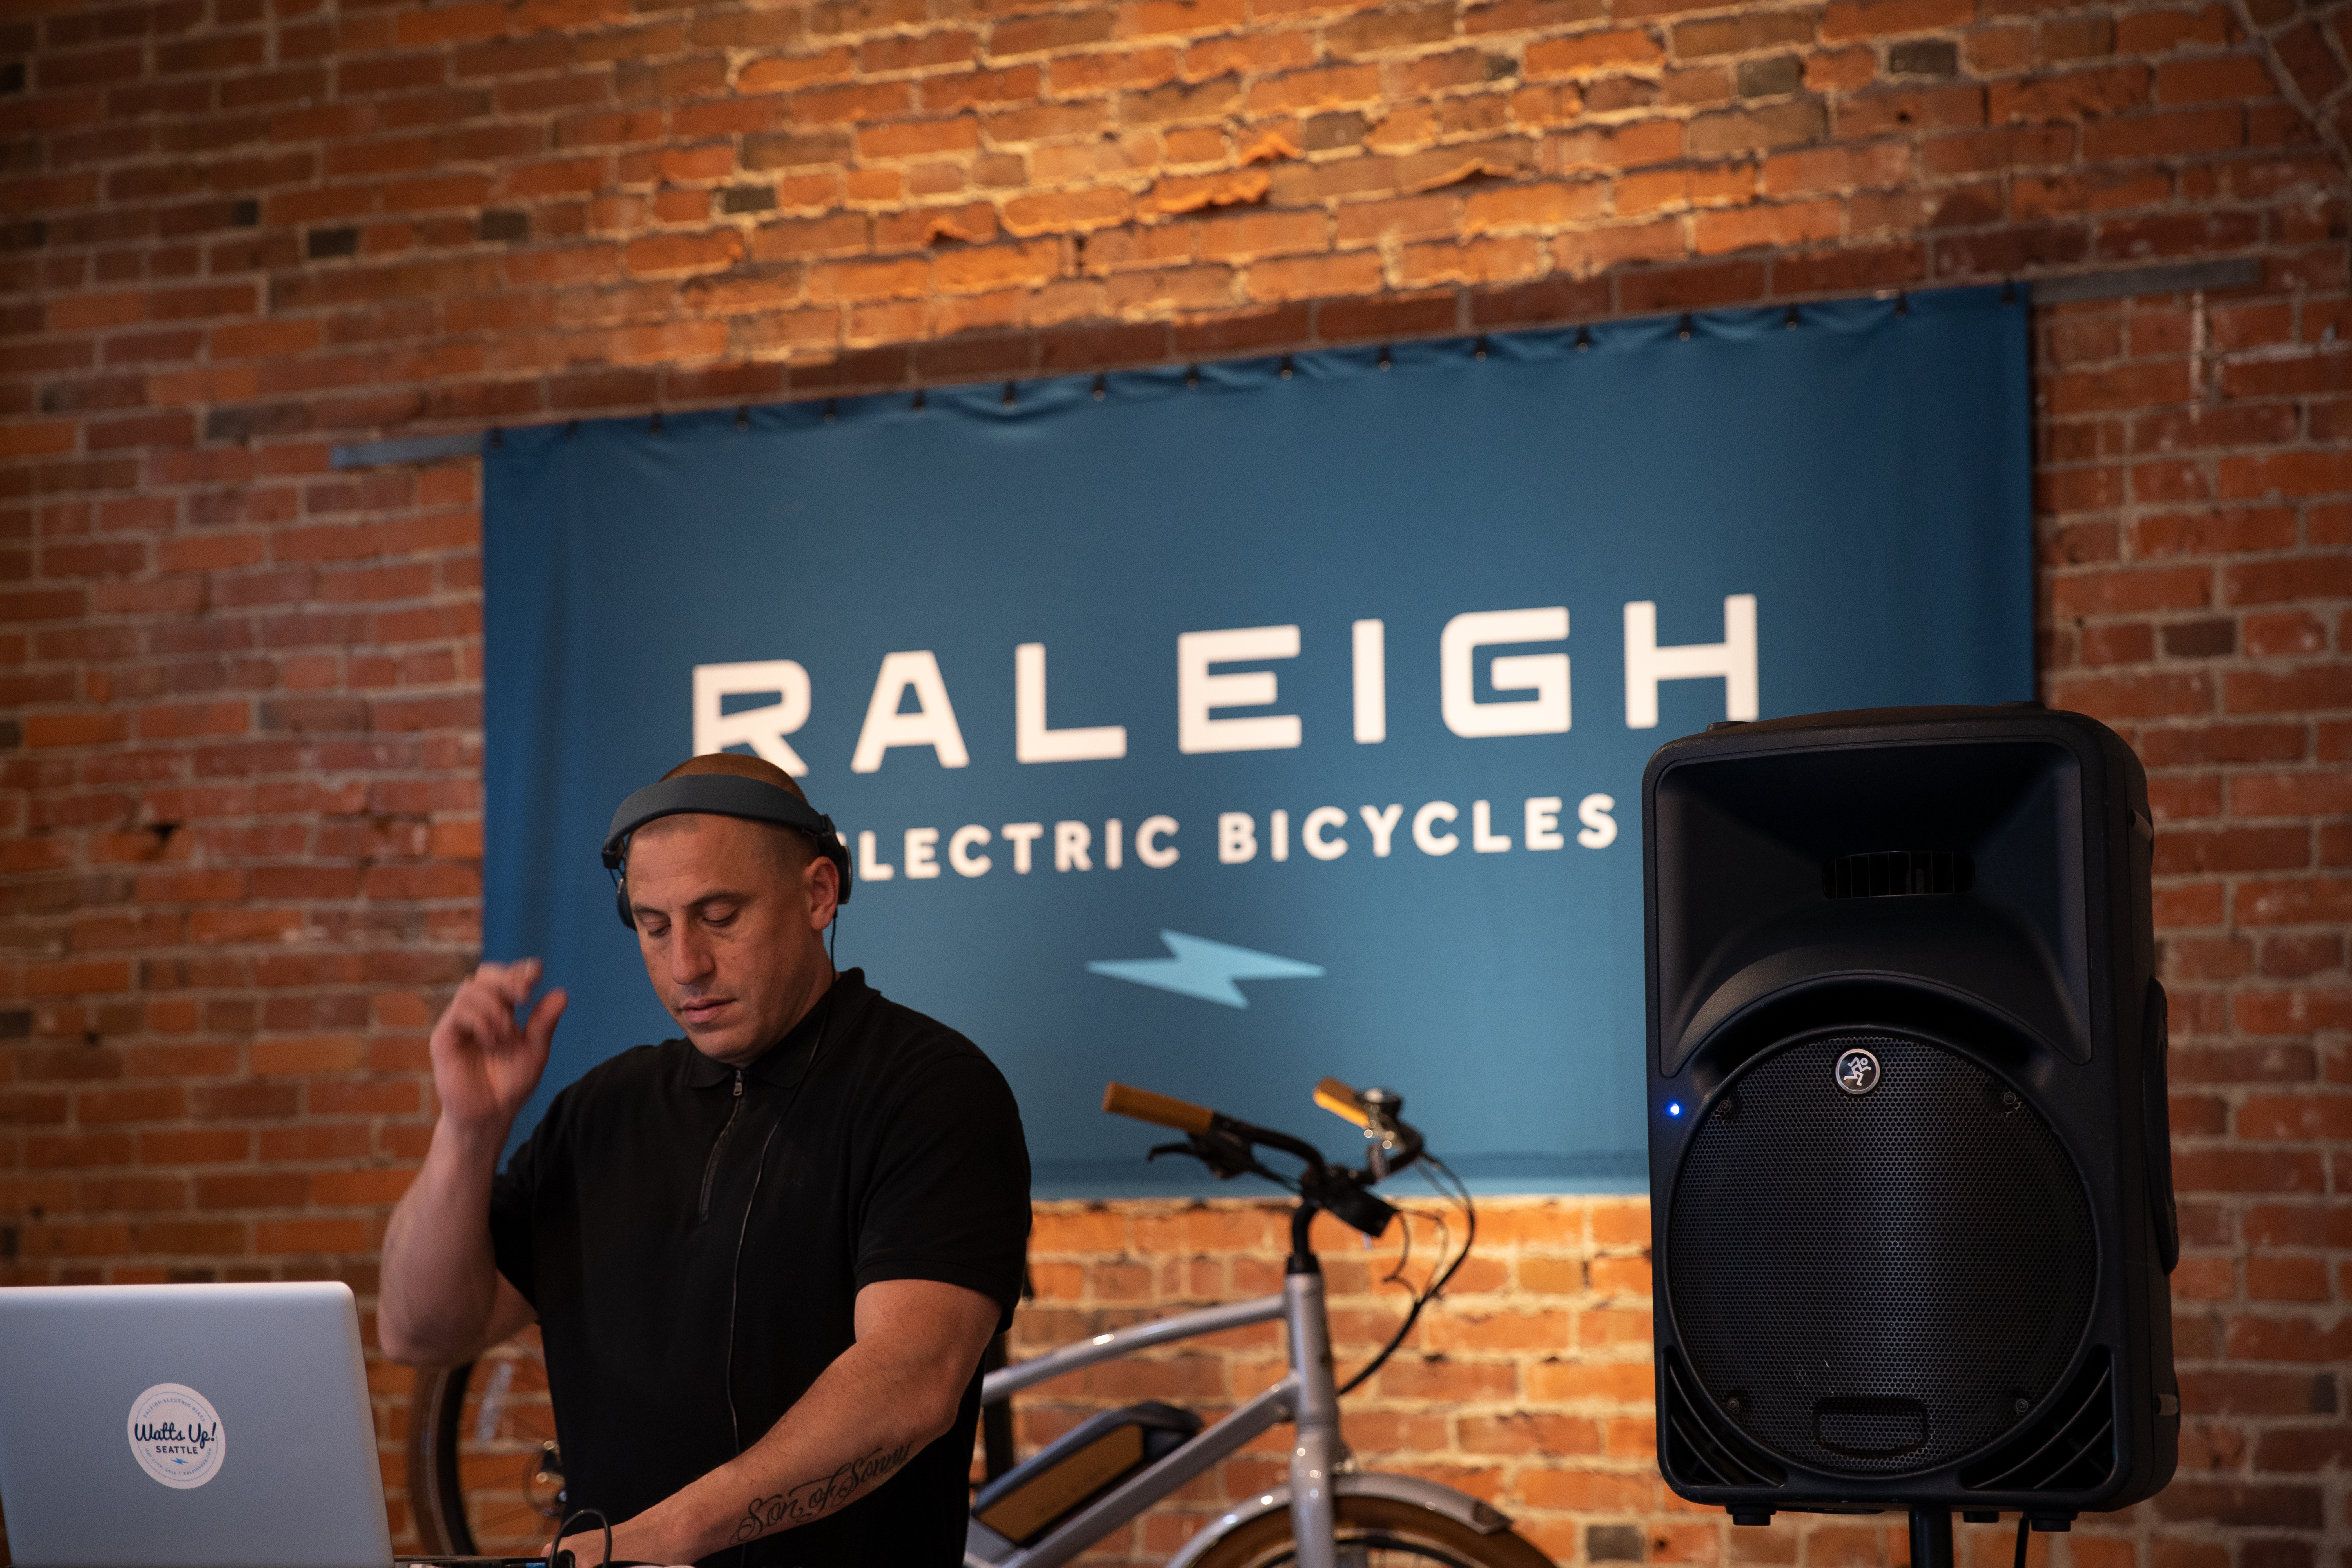 DJ scratching records in front of Raleigh sign